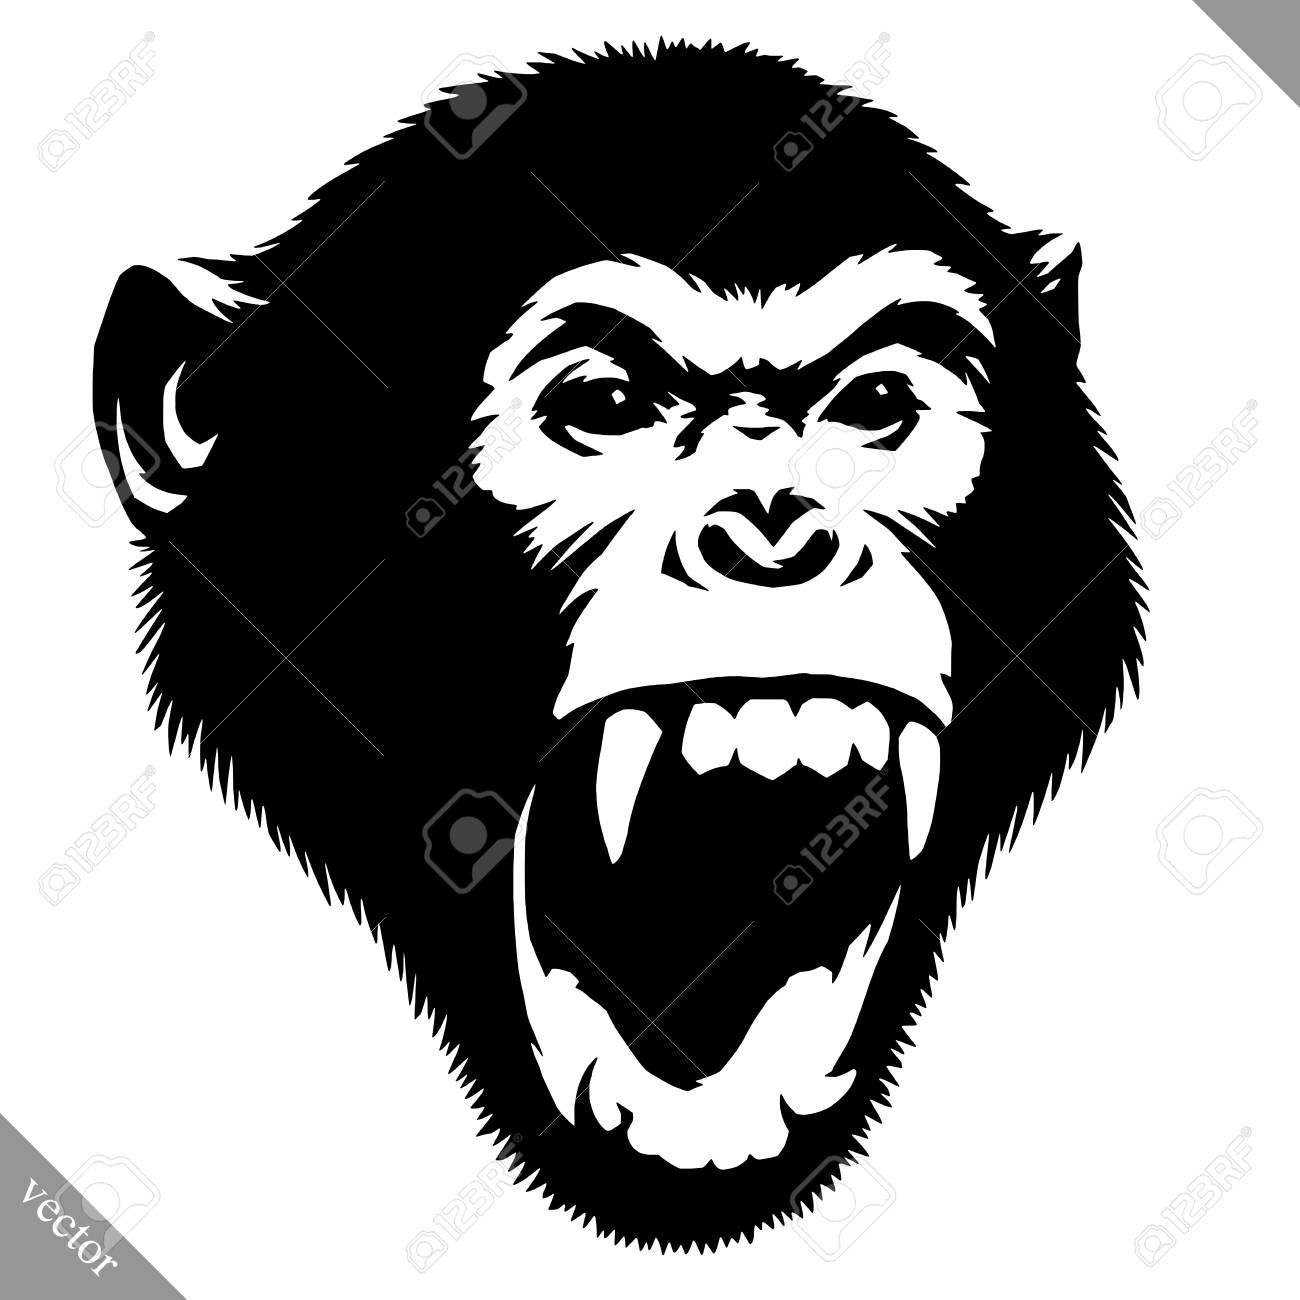 Vector Black And White Linear Paint Draw Monkey Vector Illustration Monkey Illustration Monkey Art Vector Illustration